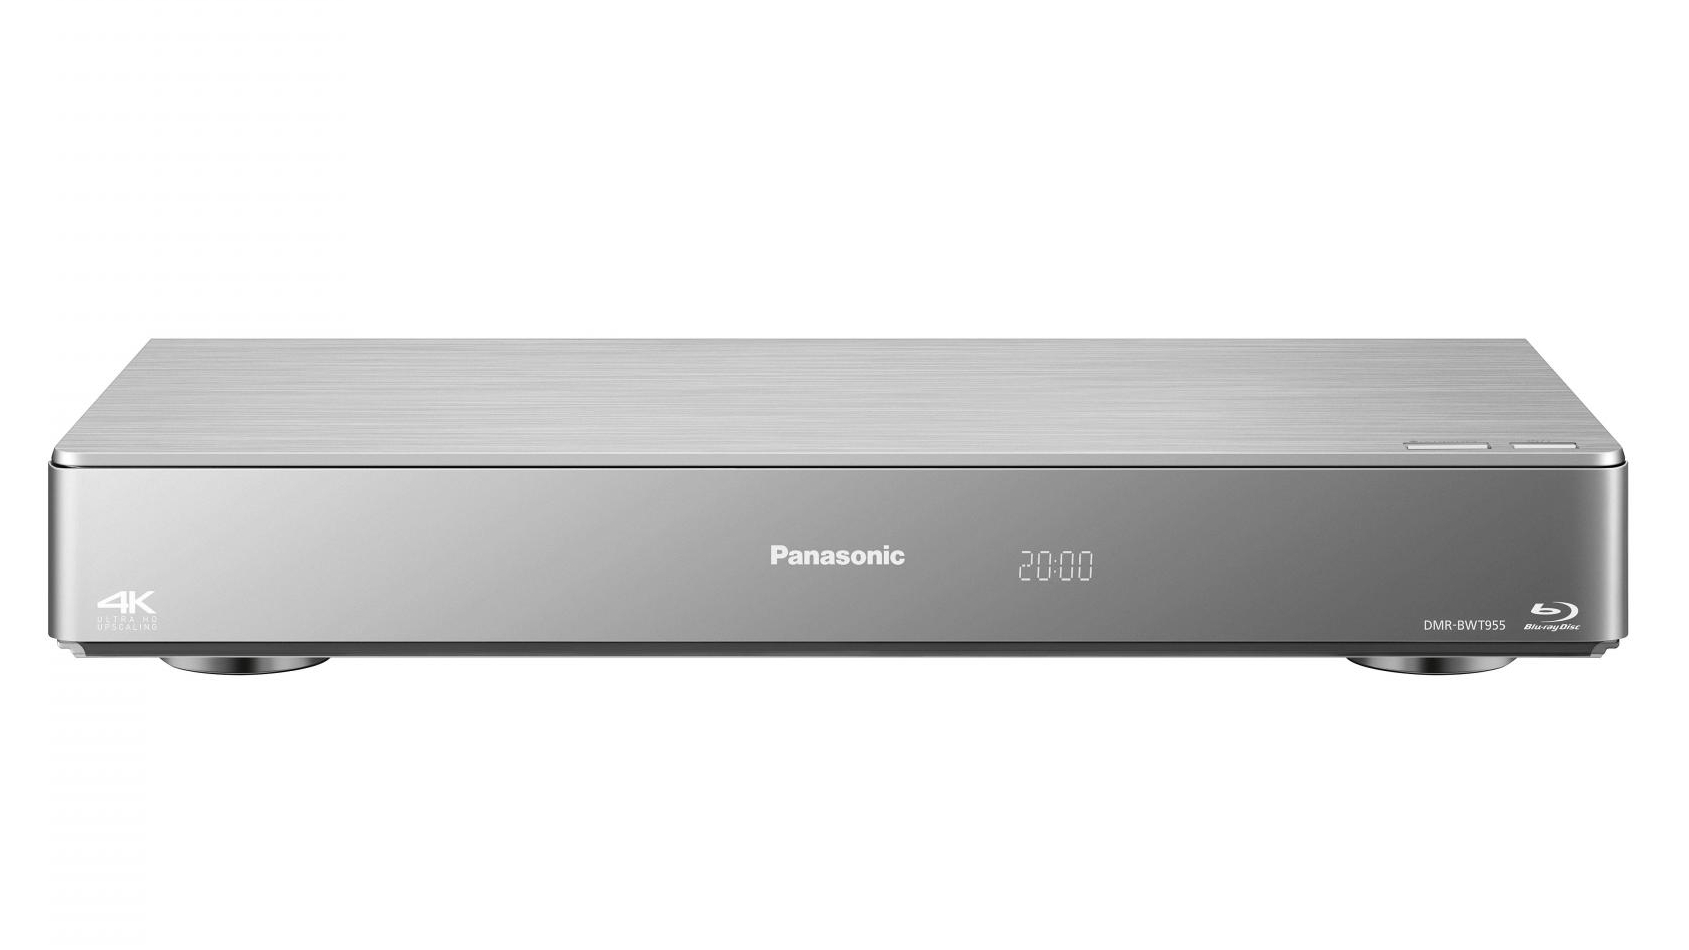 Buy Panasonic 3d 2tb Blu Ray Recorder With Triple Hd Tuner Harvey Working Of Digital Versatile Disc Dvd Norman Au